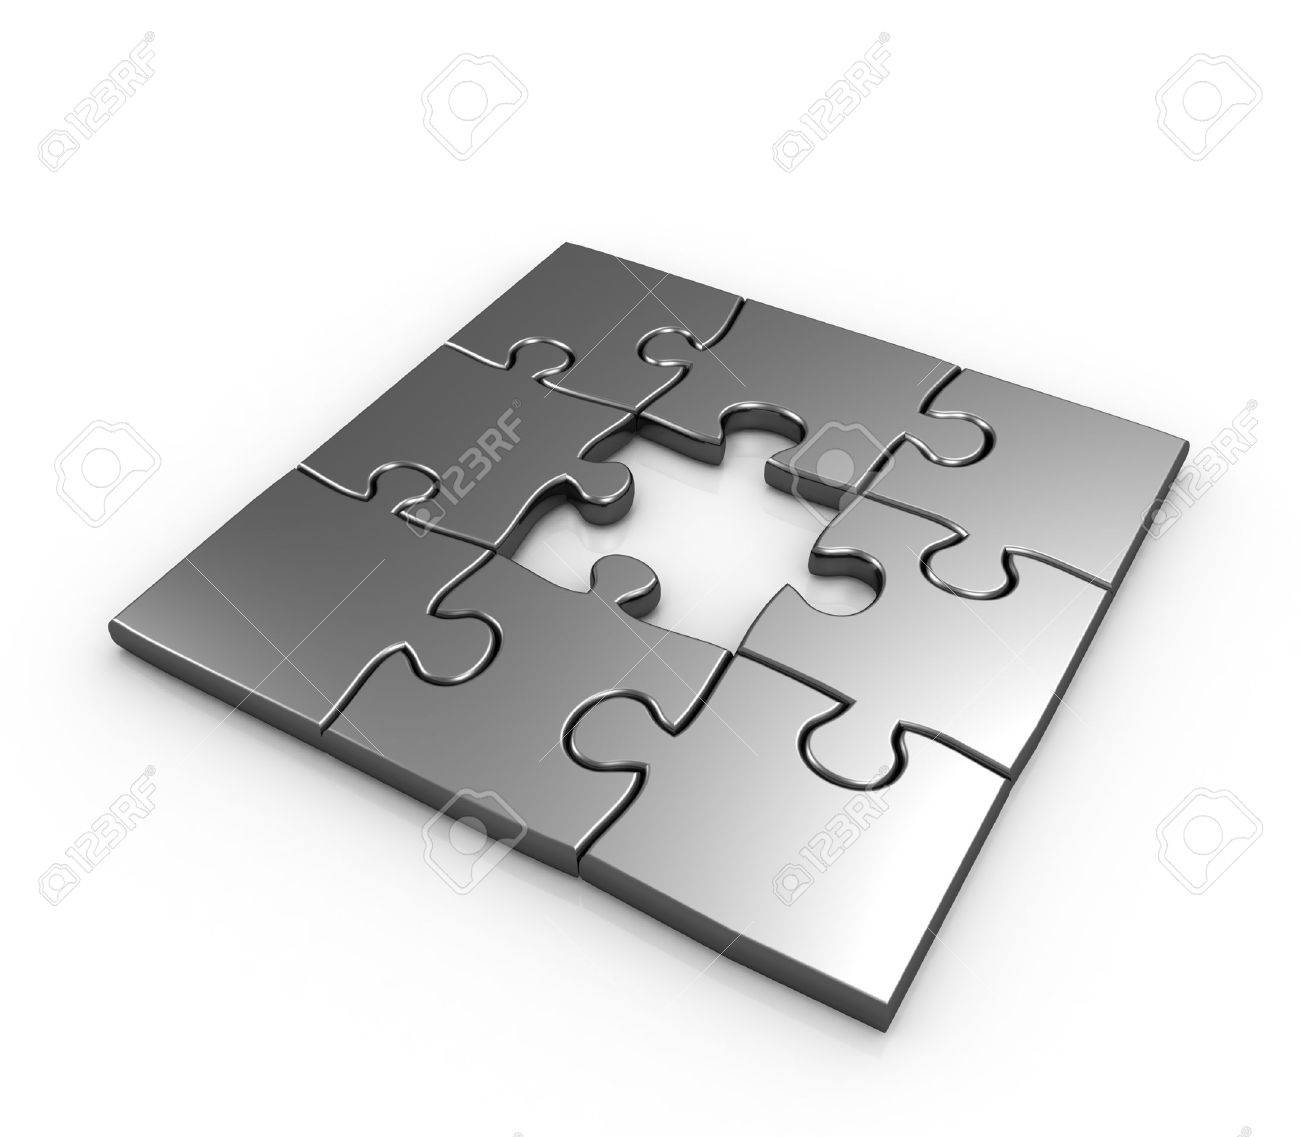 Missing piece puzzle isolated 3d illustration Stock Photo - 8637061